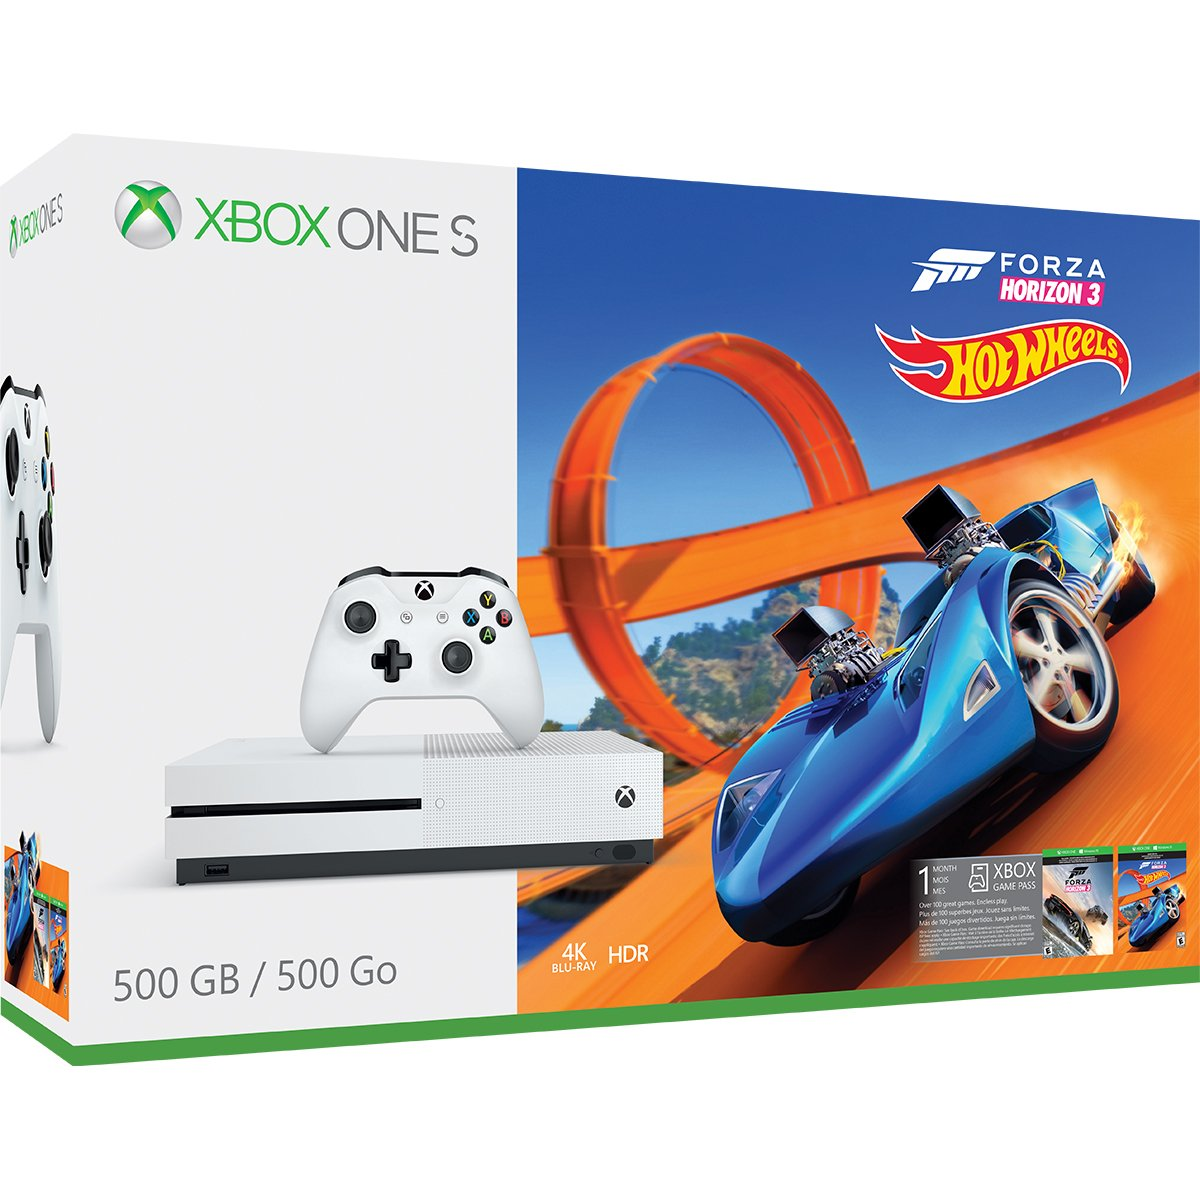 Xbox One S 500GB Console - Forza Horizon 3 Hot Wheels Bundle by Microsoft